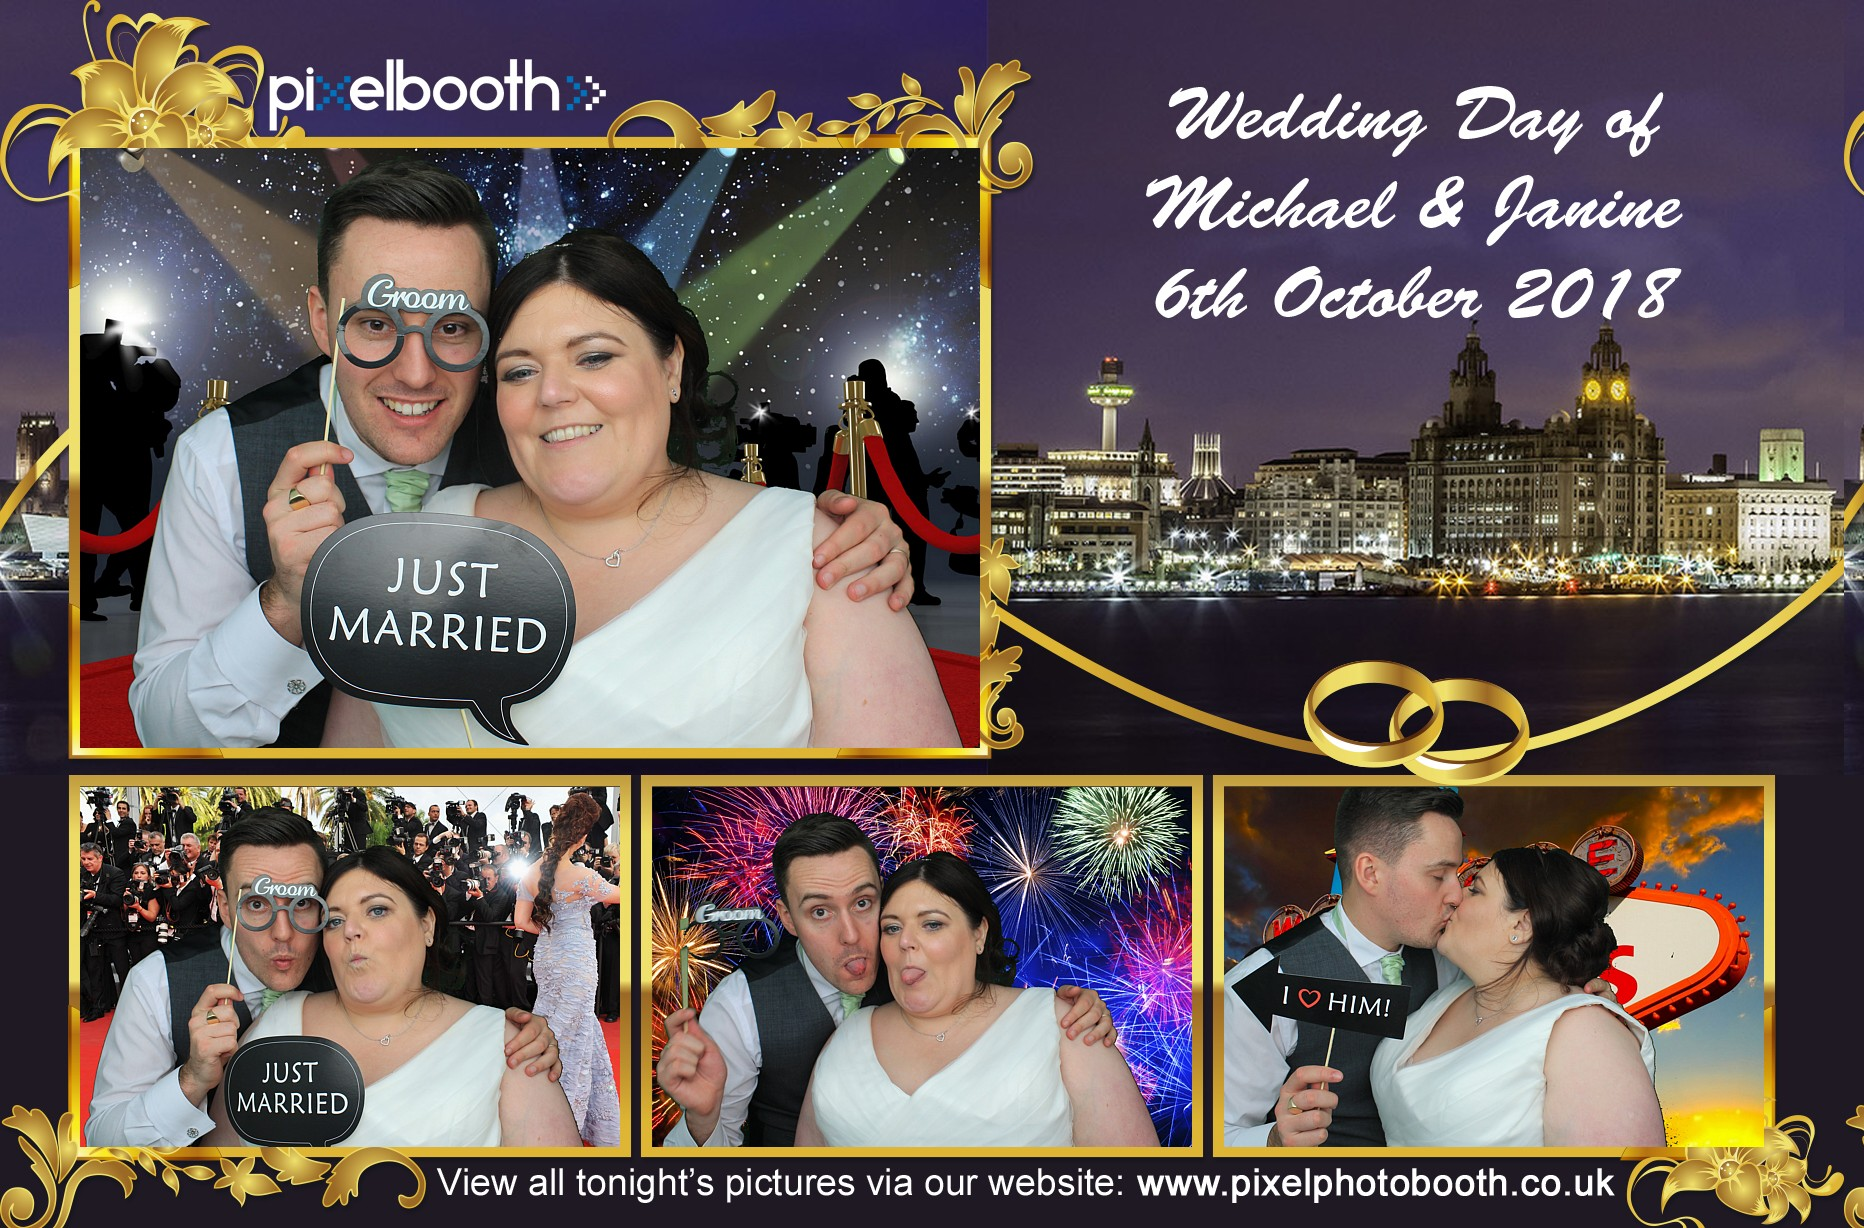 6th Oct 2018: Michael and Janine's Wedding at Oak Tree, Knutsford